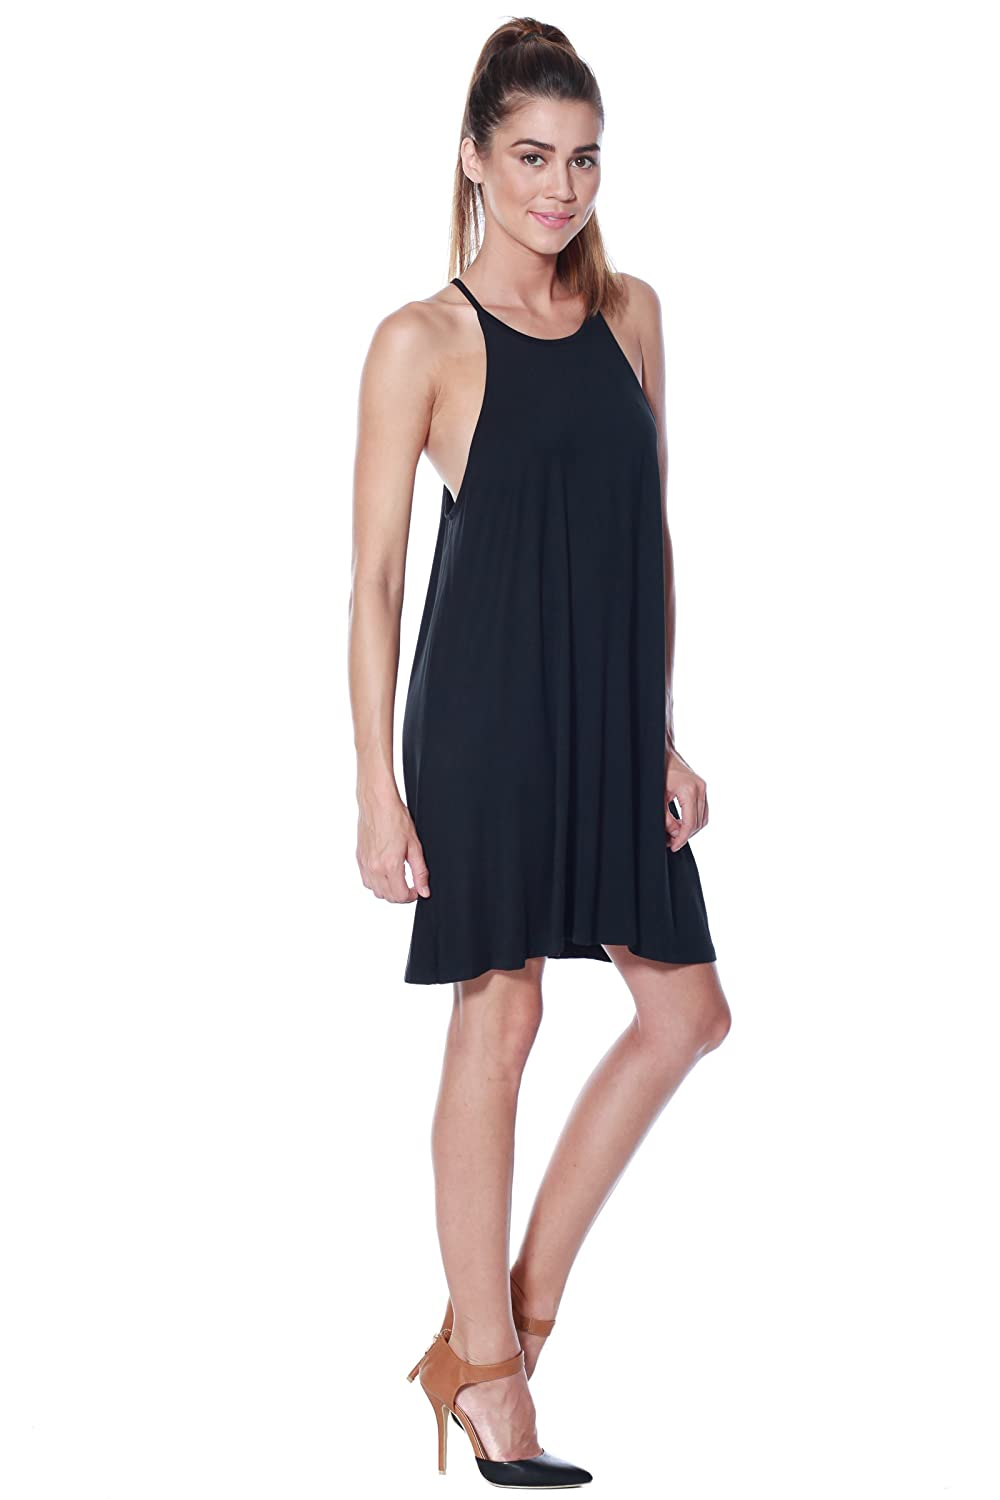 21c729ae8ba6 A+D Womens Modal Halter Tank Dress - Casual Knit Swing Tunic at Amazon  Women's Clothing store: